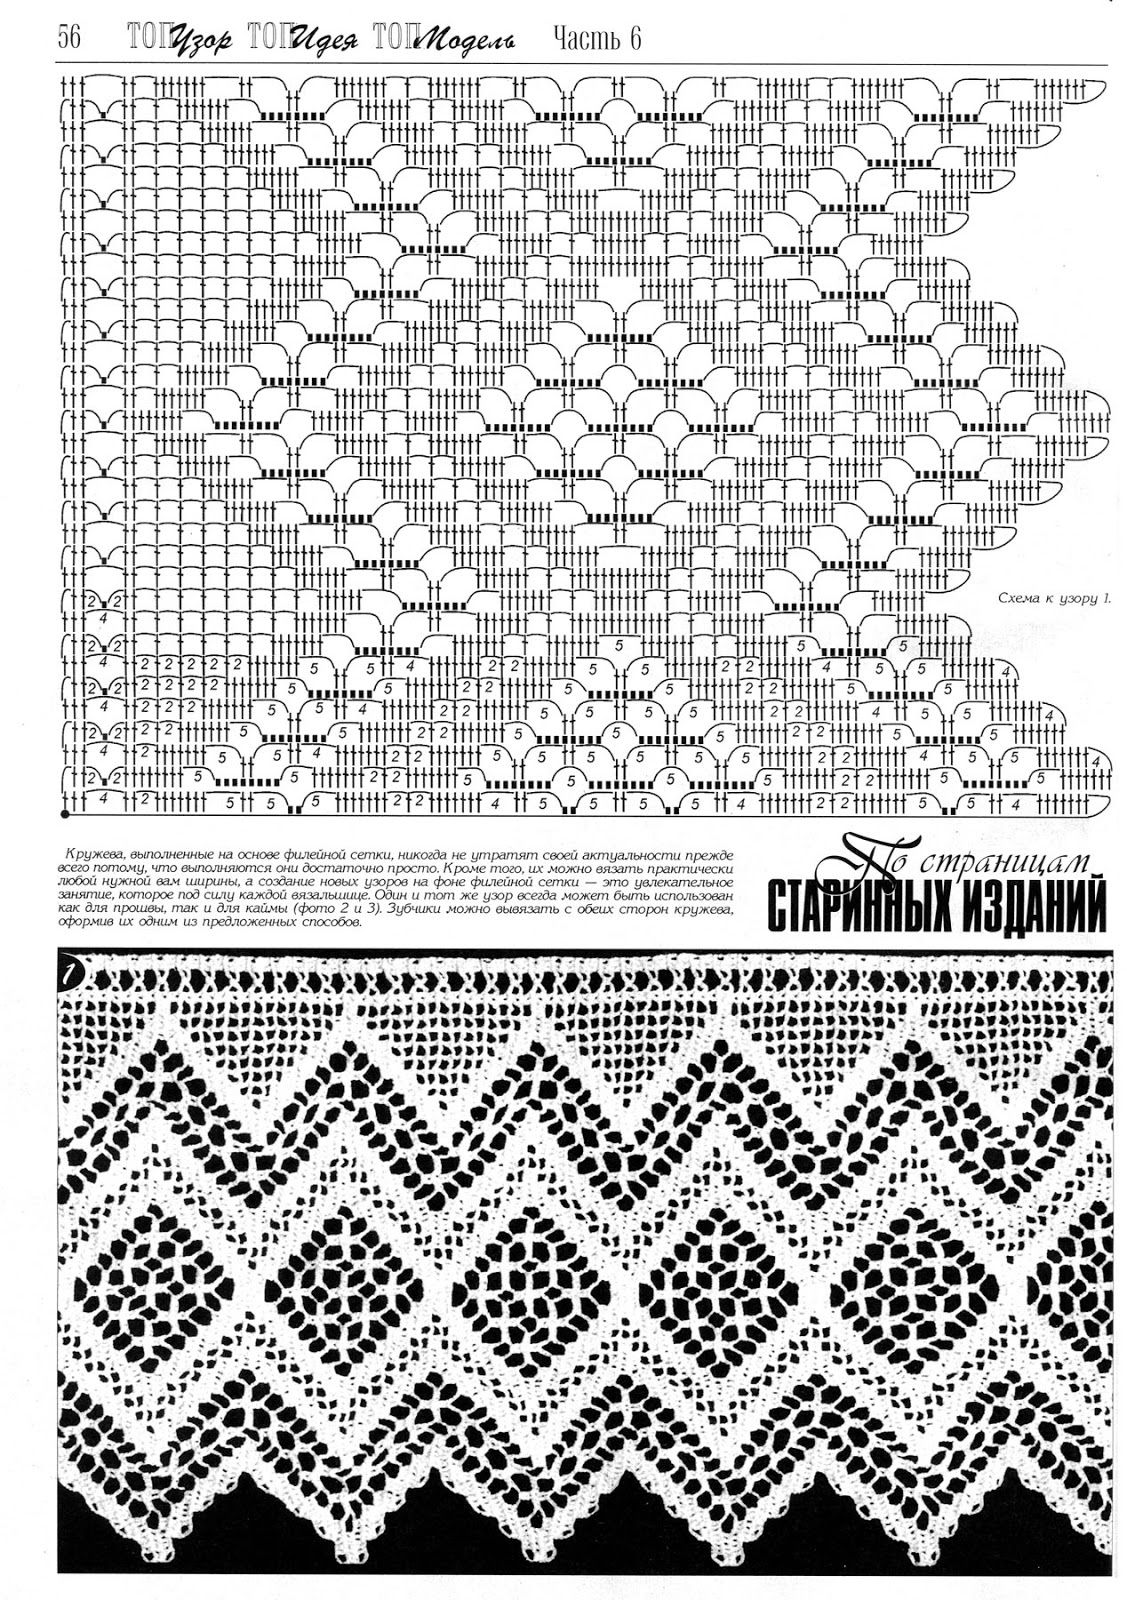 Pin by liliana brancaglione on bordi uncinetto pinterest crochet borders crochet patterns gallery album image search crochet lace crochet chart crochet pattern crochet stitches bankloansurffo Images